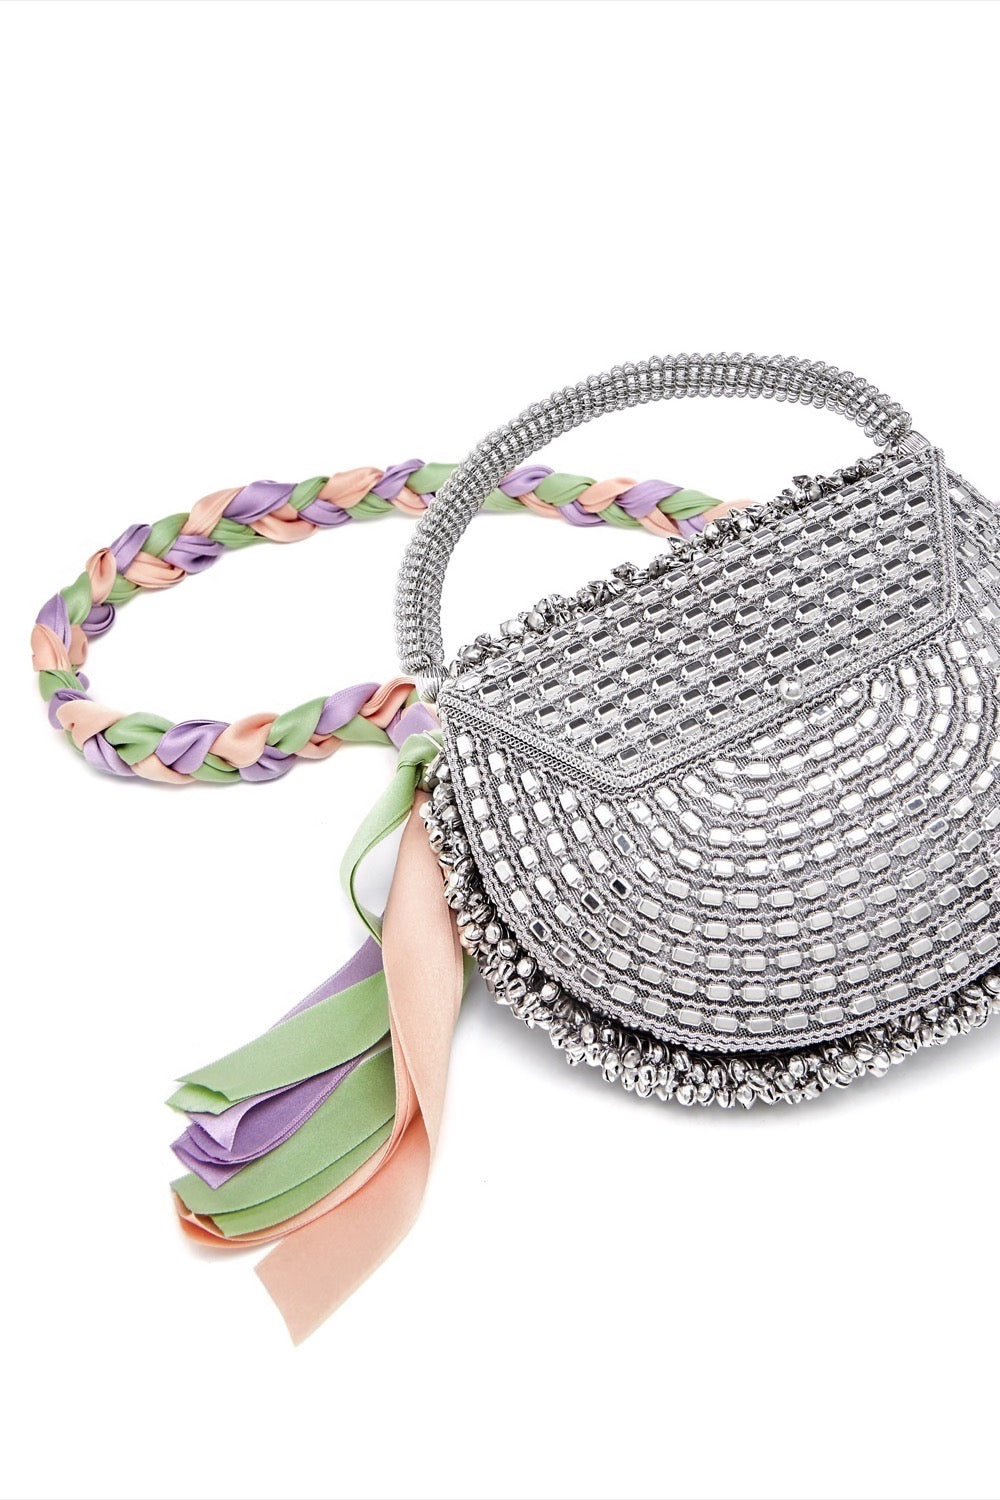 Mae Cassidy Malini Dream Silver Pastel Ribbon Plaited Handbag. Modelled by Emma Laird, Photography By Annie Lai.